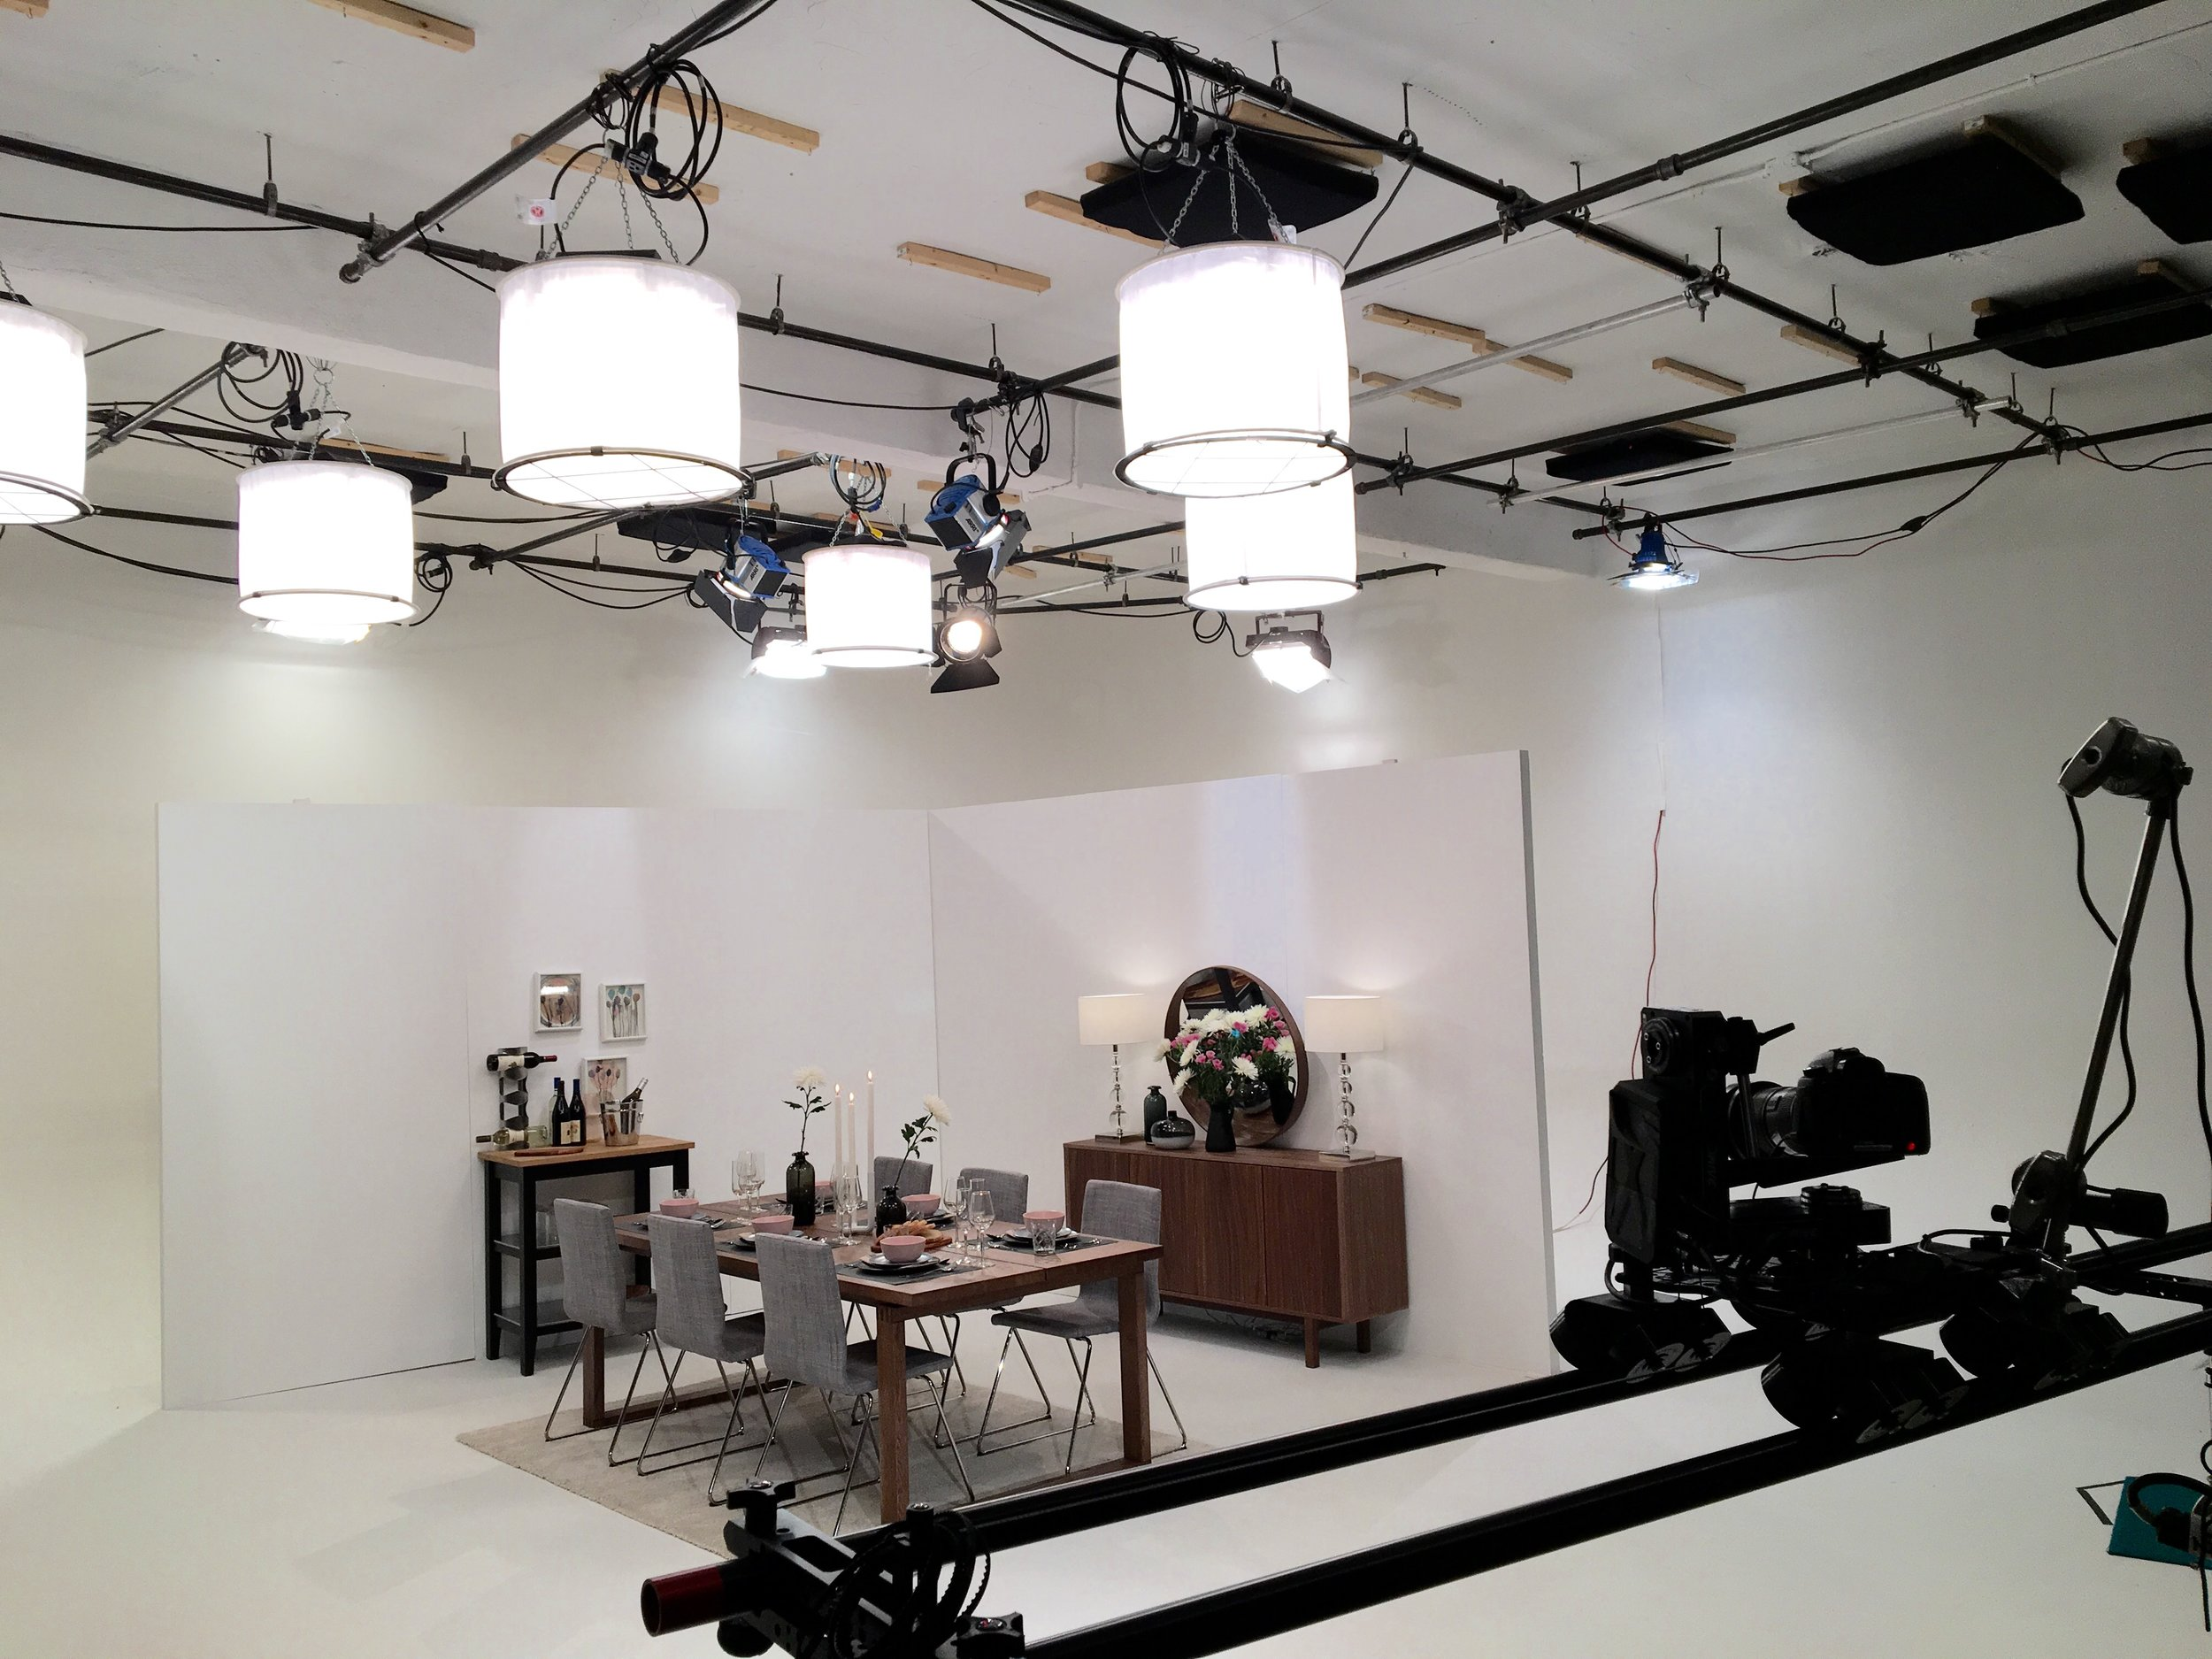 timelapse-productshoot-photostudio-ikeausa-timeinc-commercial.jpg